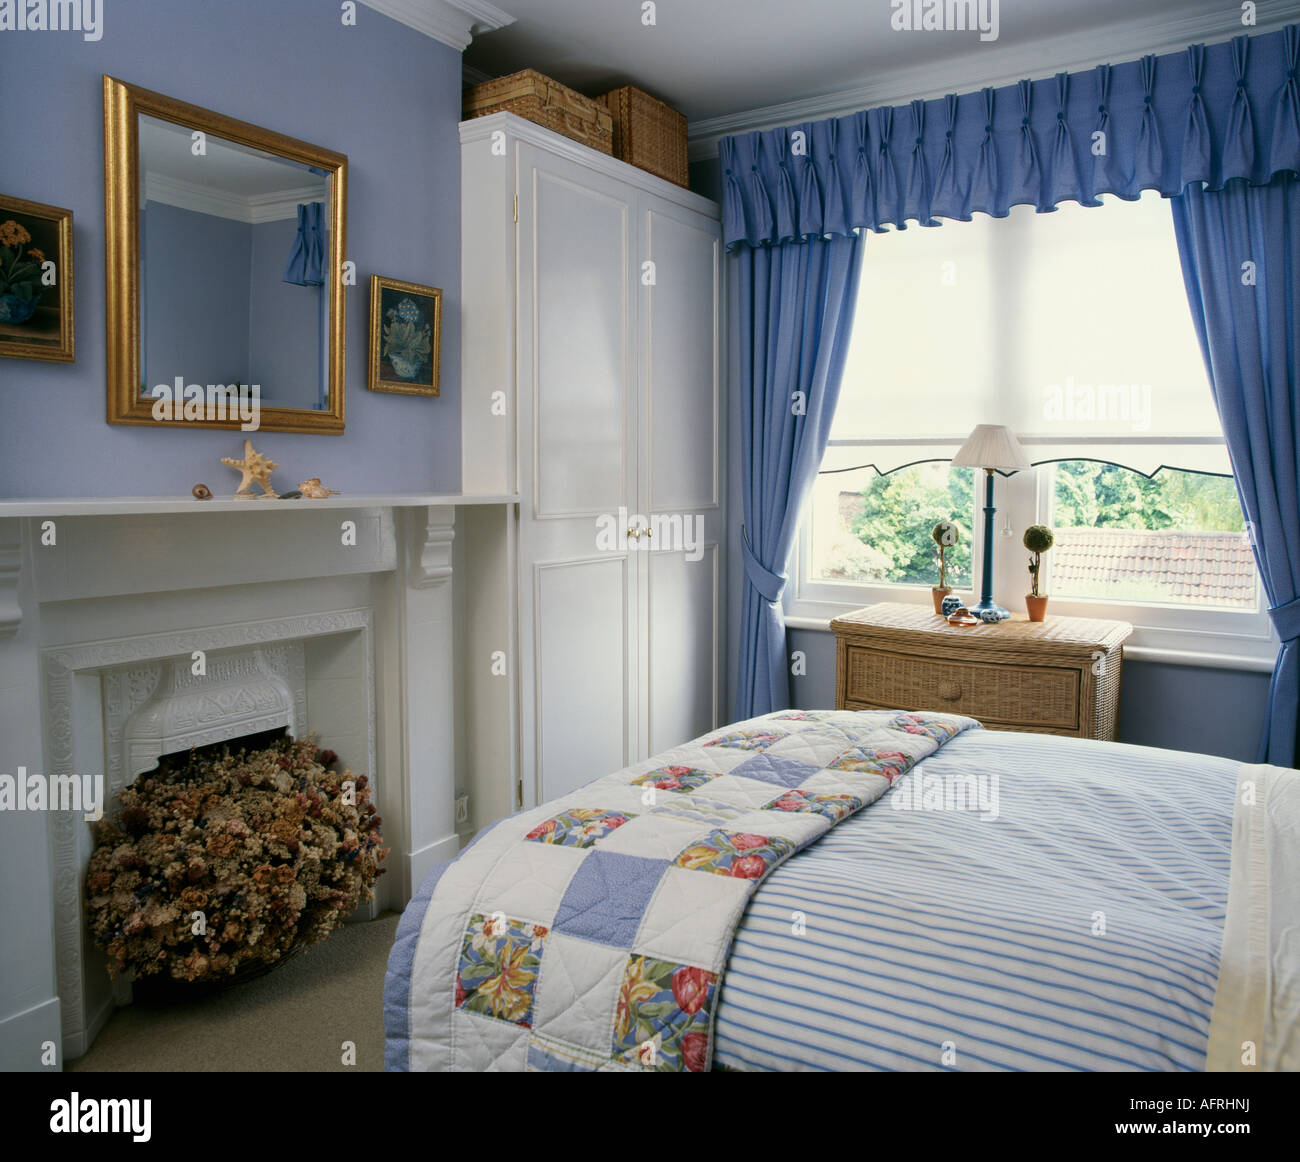 Superior Patchwork Quilt On Bed In Pale Blue Bedroom With White Built In Cupboard  And Blue Curtains